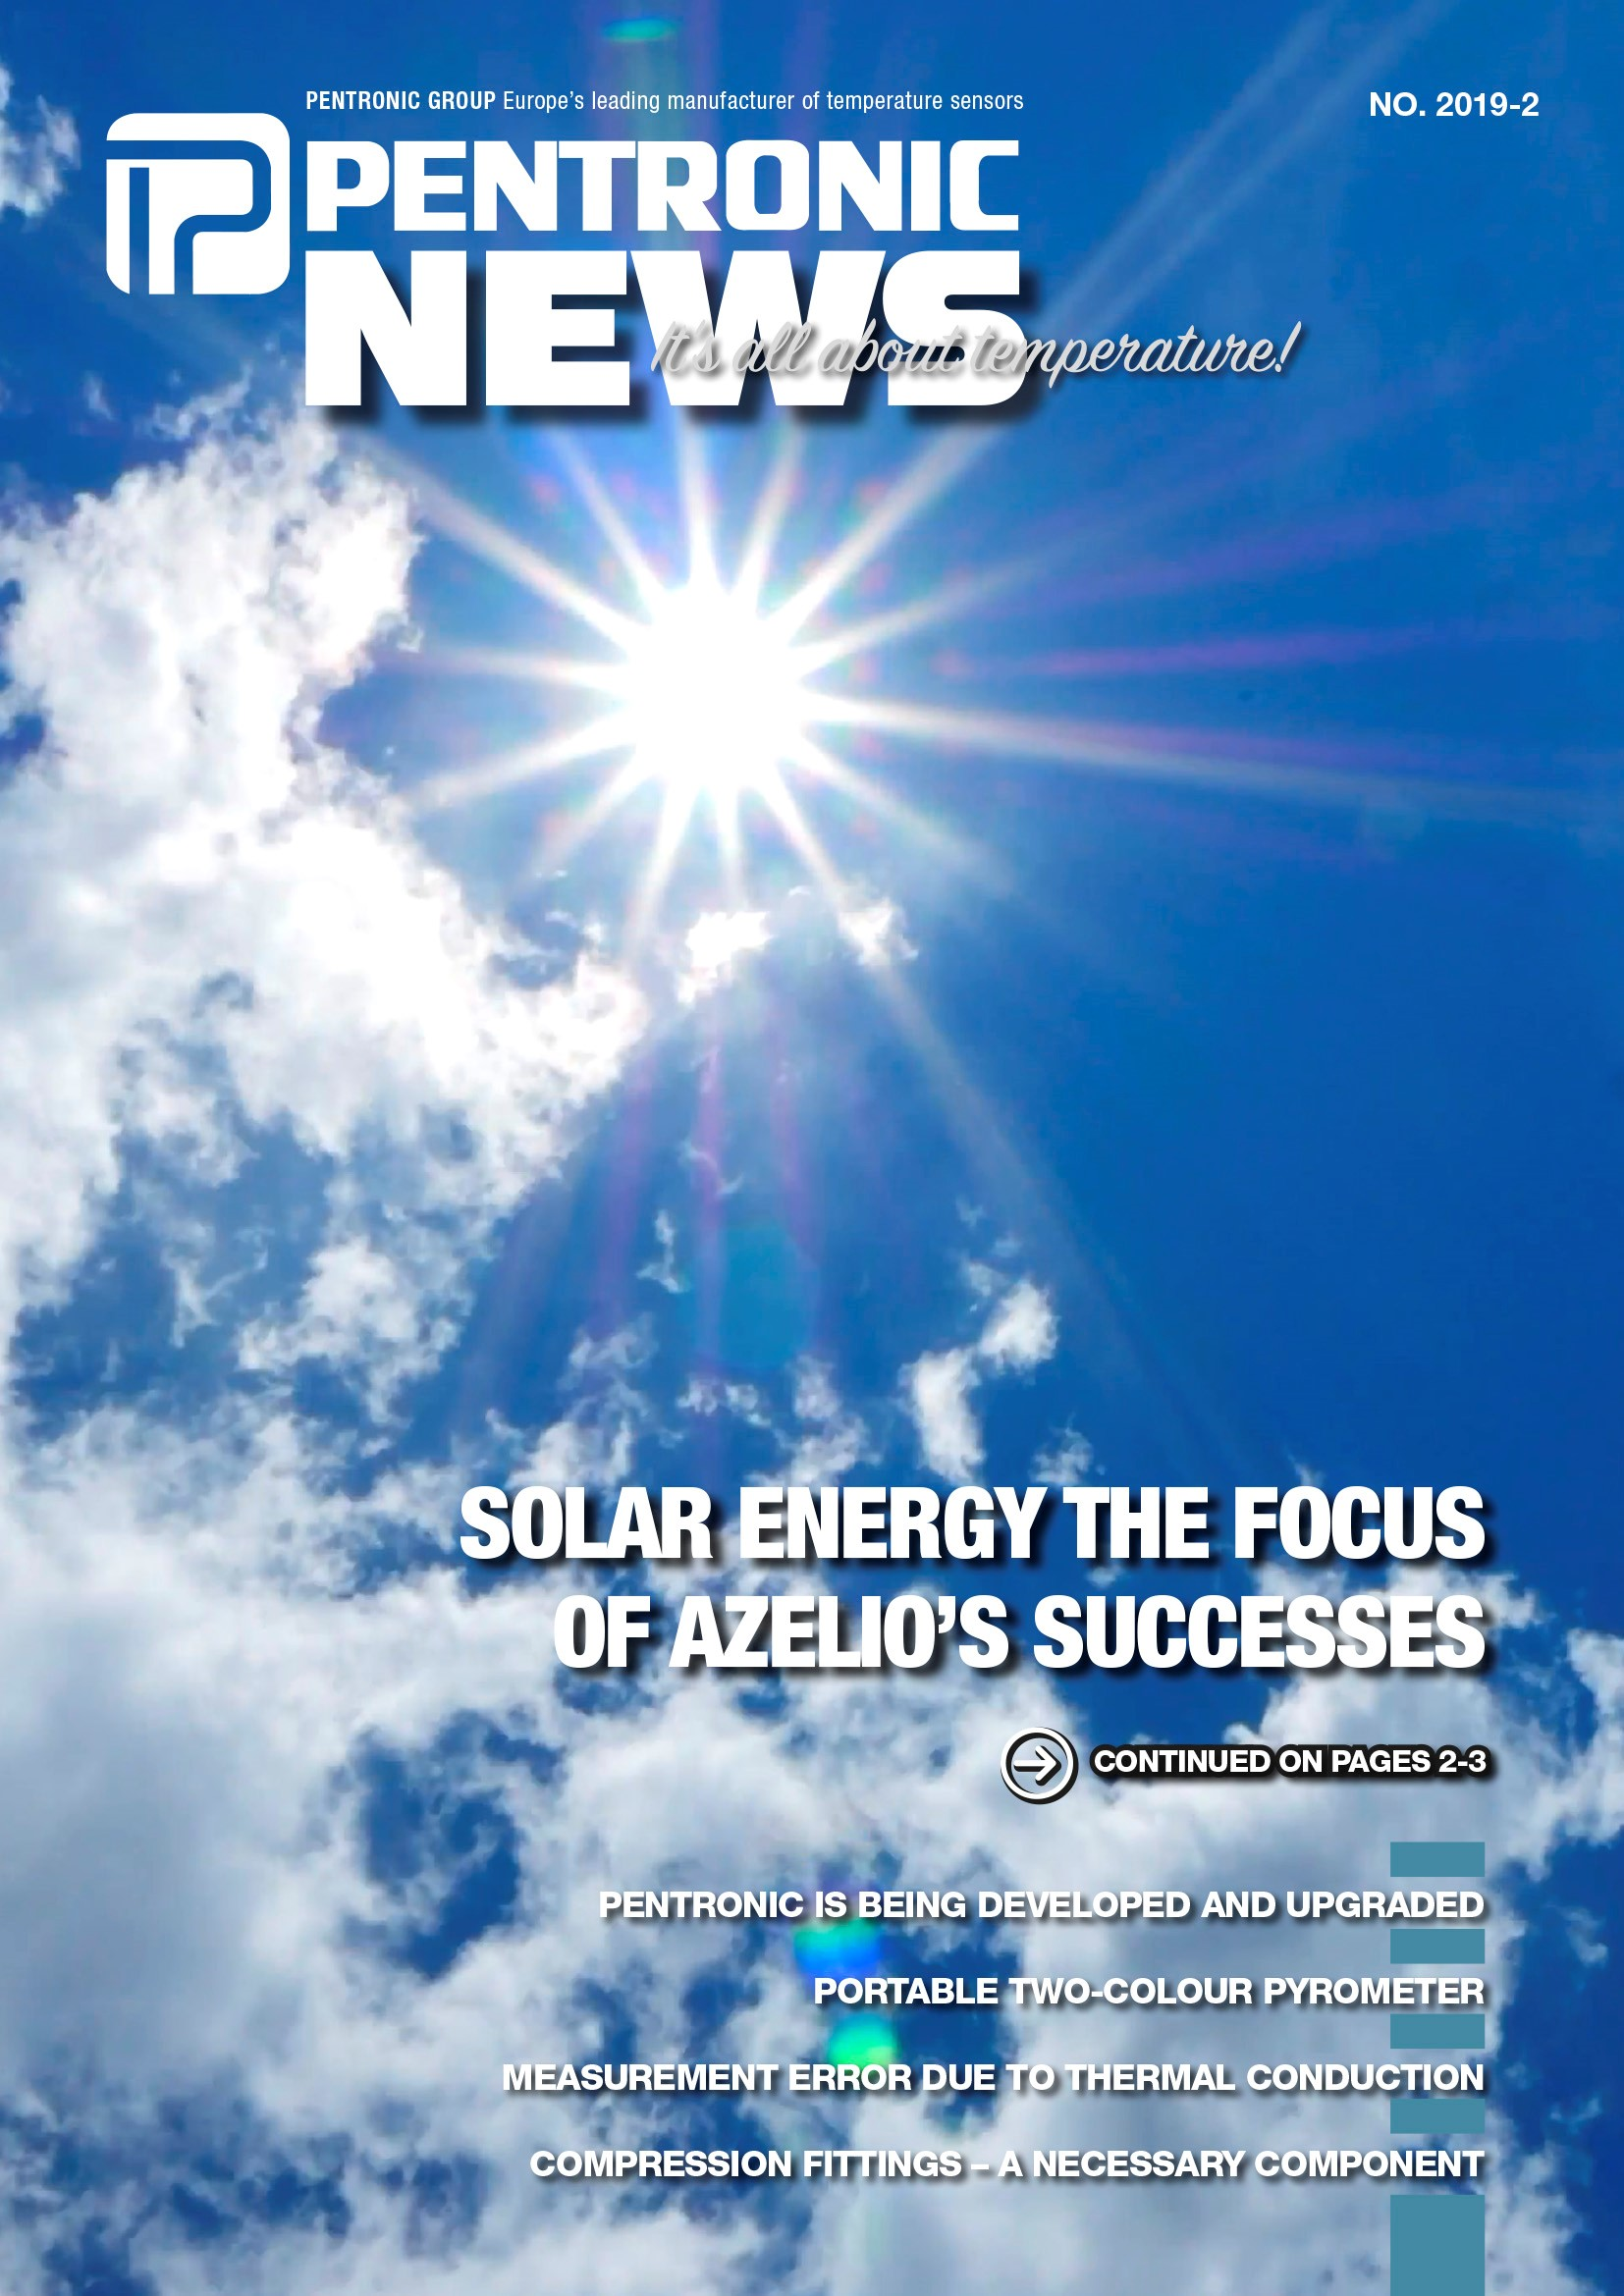 Pentronic News 2019-2 with an article about Azelio that develops plants for converting solar energy into electricity.